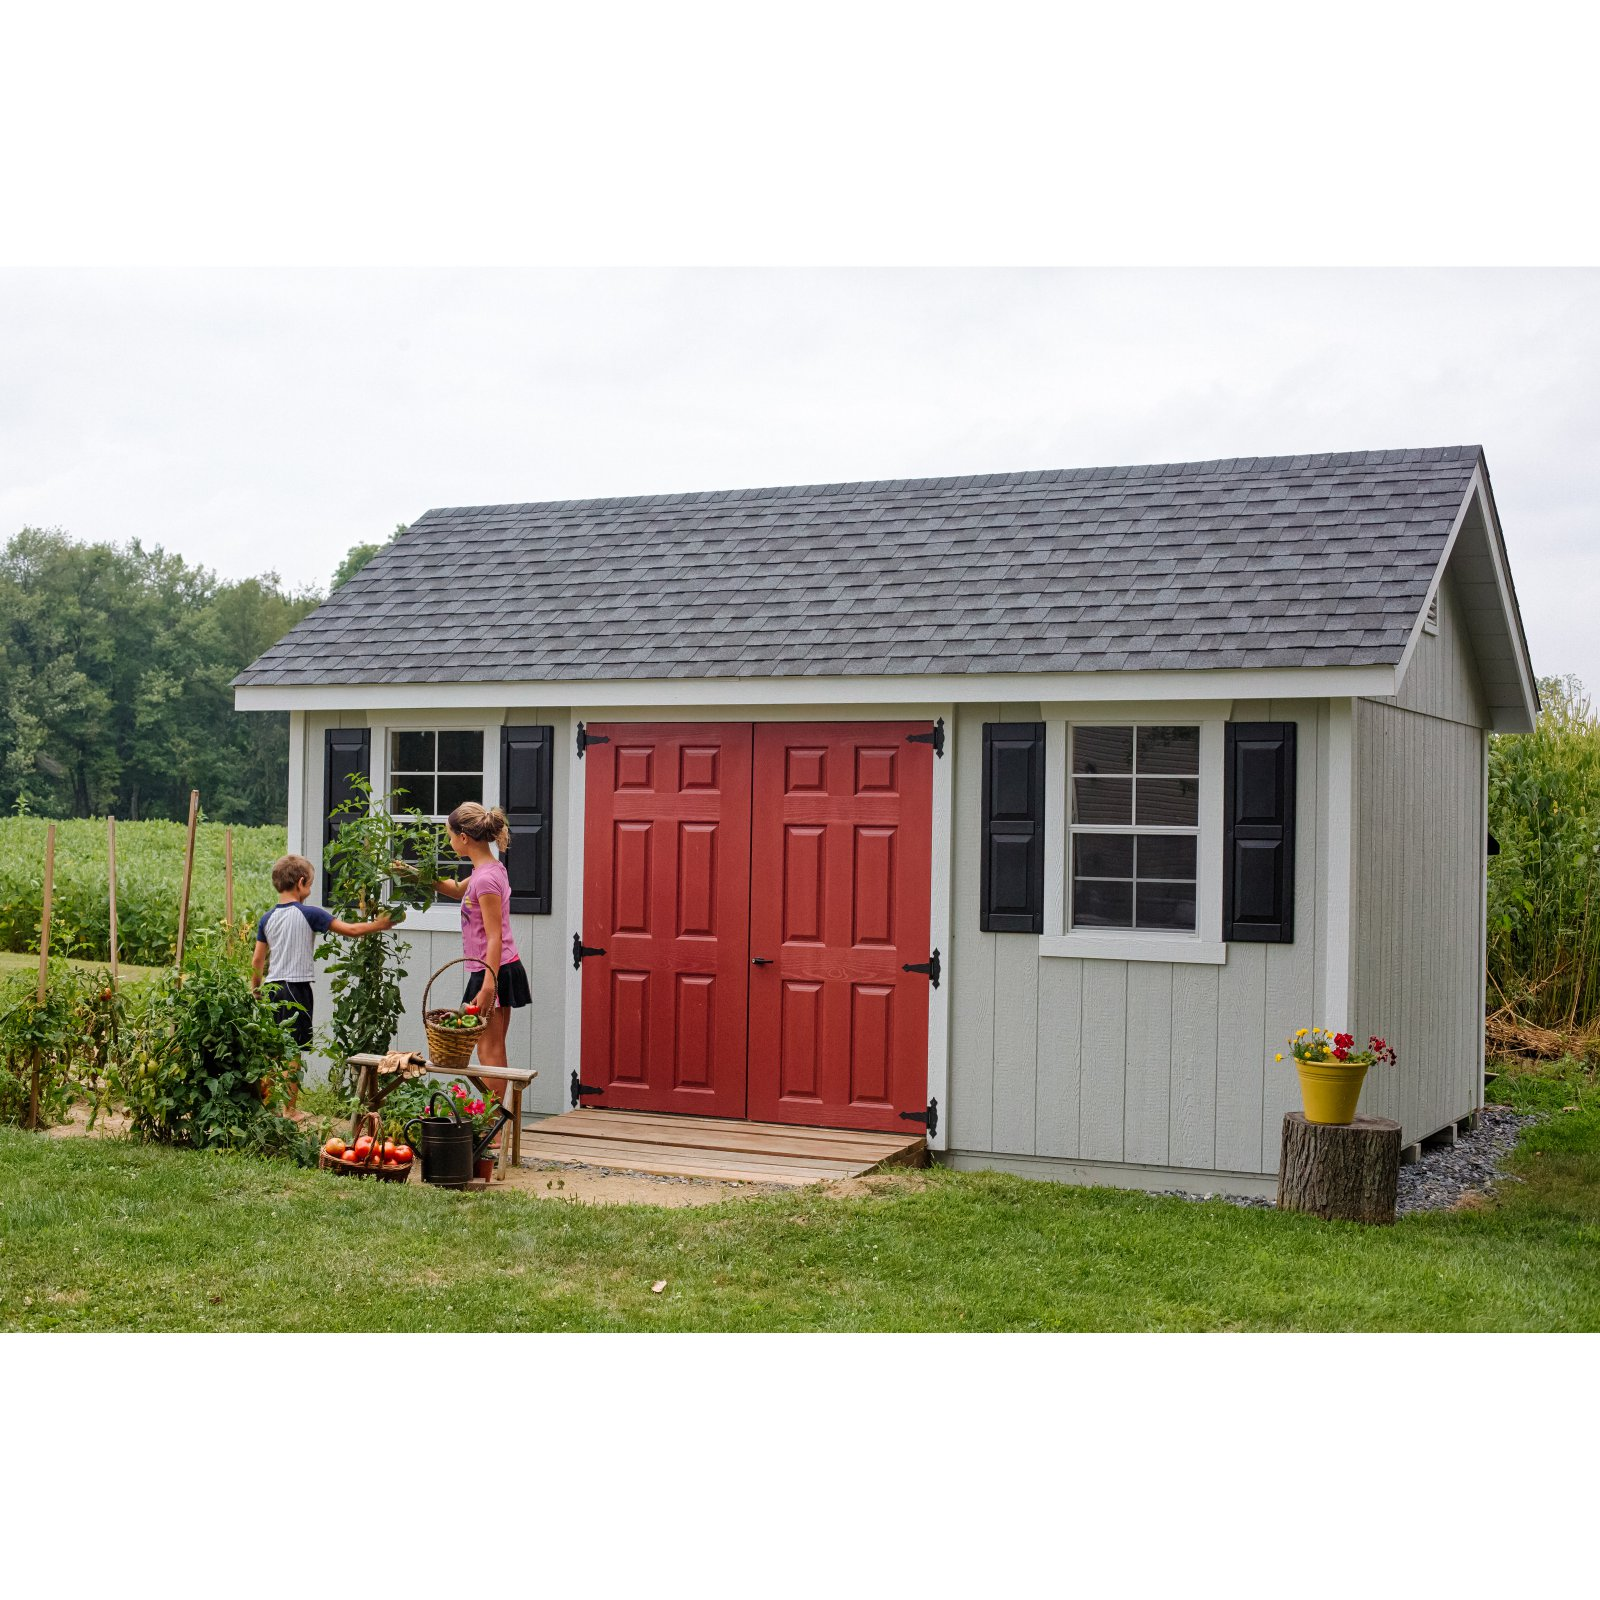 YardCraft 10 ft. x 18 ft. Fairmont Garden Shed